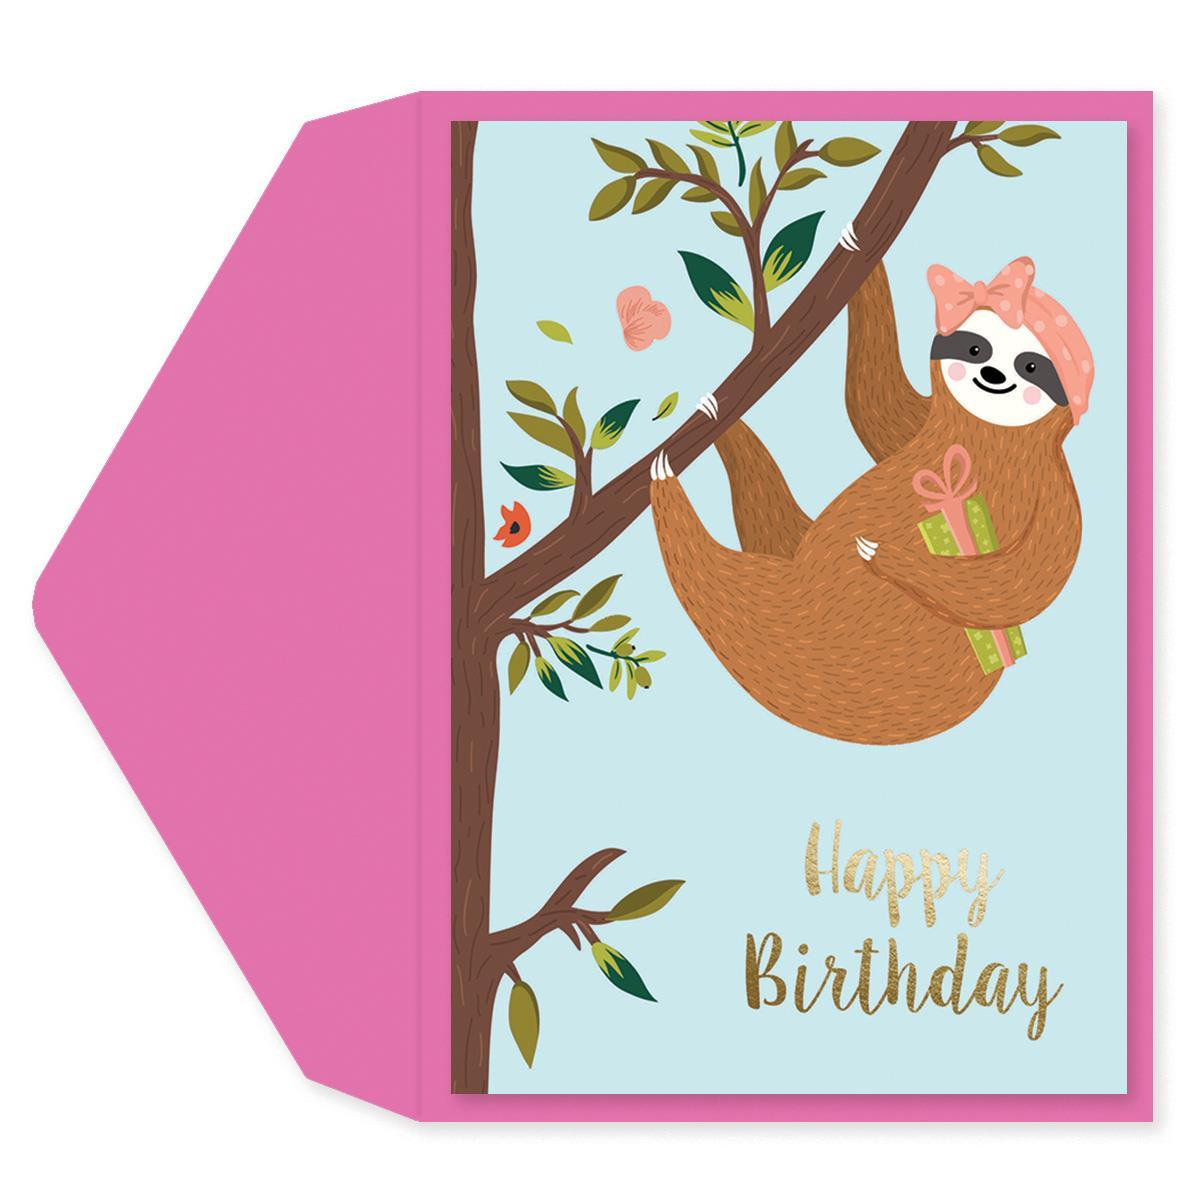 Sloth Birthday Card